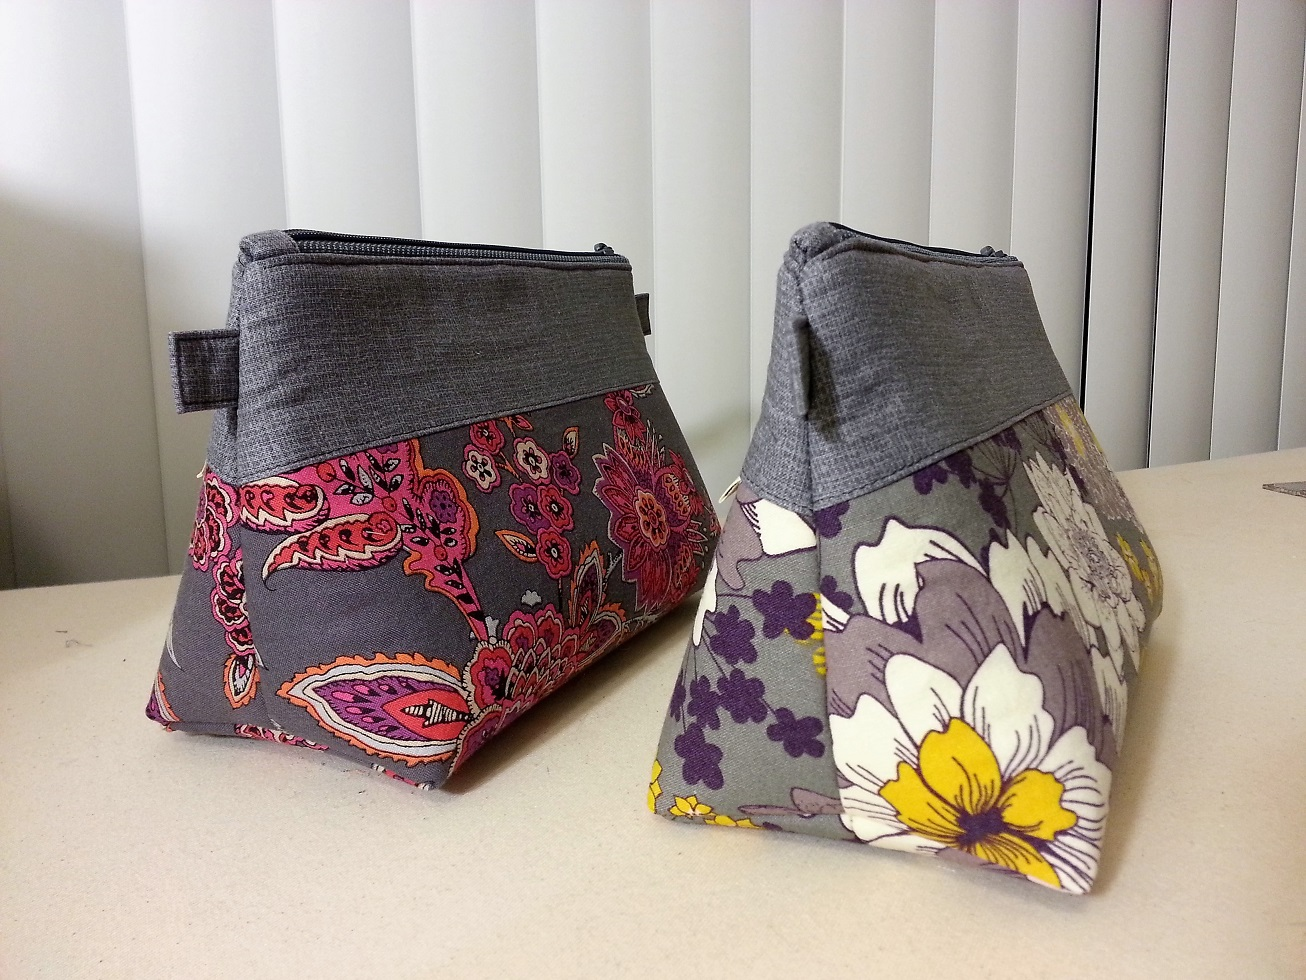 ... downloadable pattern from So Sew Easy (from which I got the boxy bag  pattern). She has TONS of free downloadable patterns and tutorials. 0f1bd9ceaefad